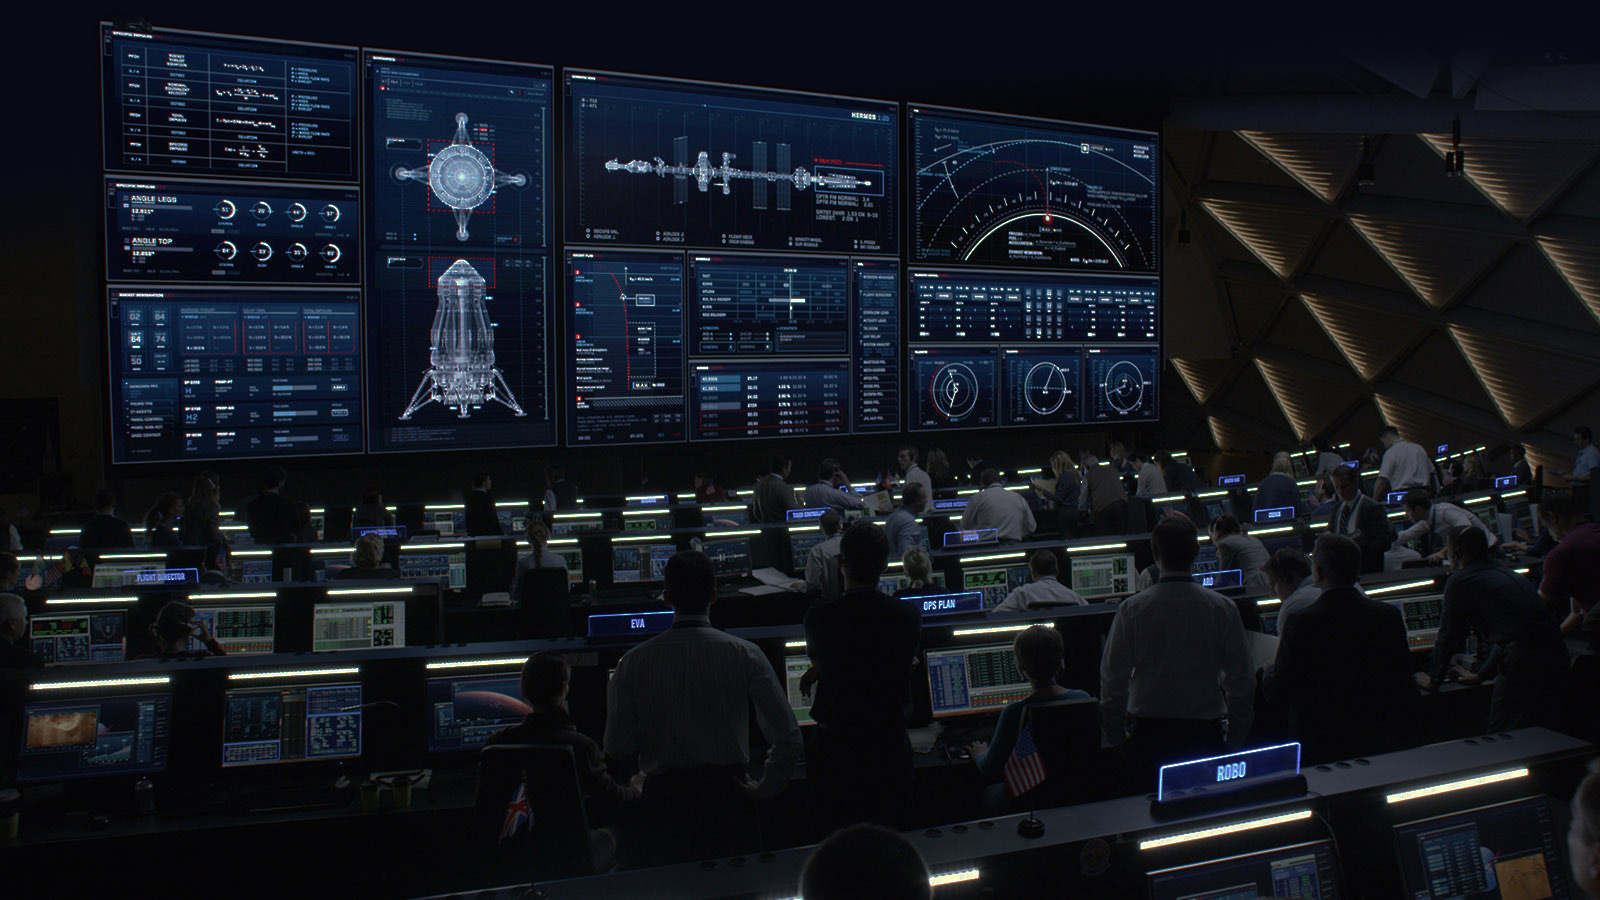 mars rover mission control - photo #18